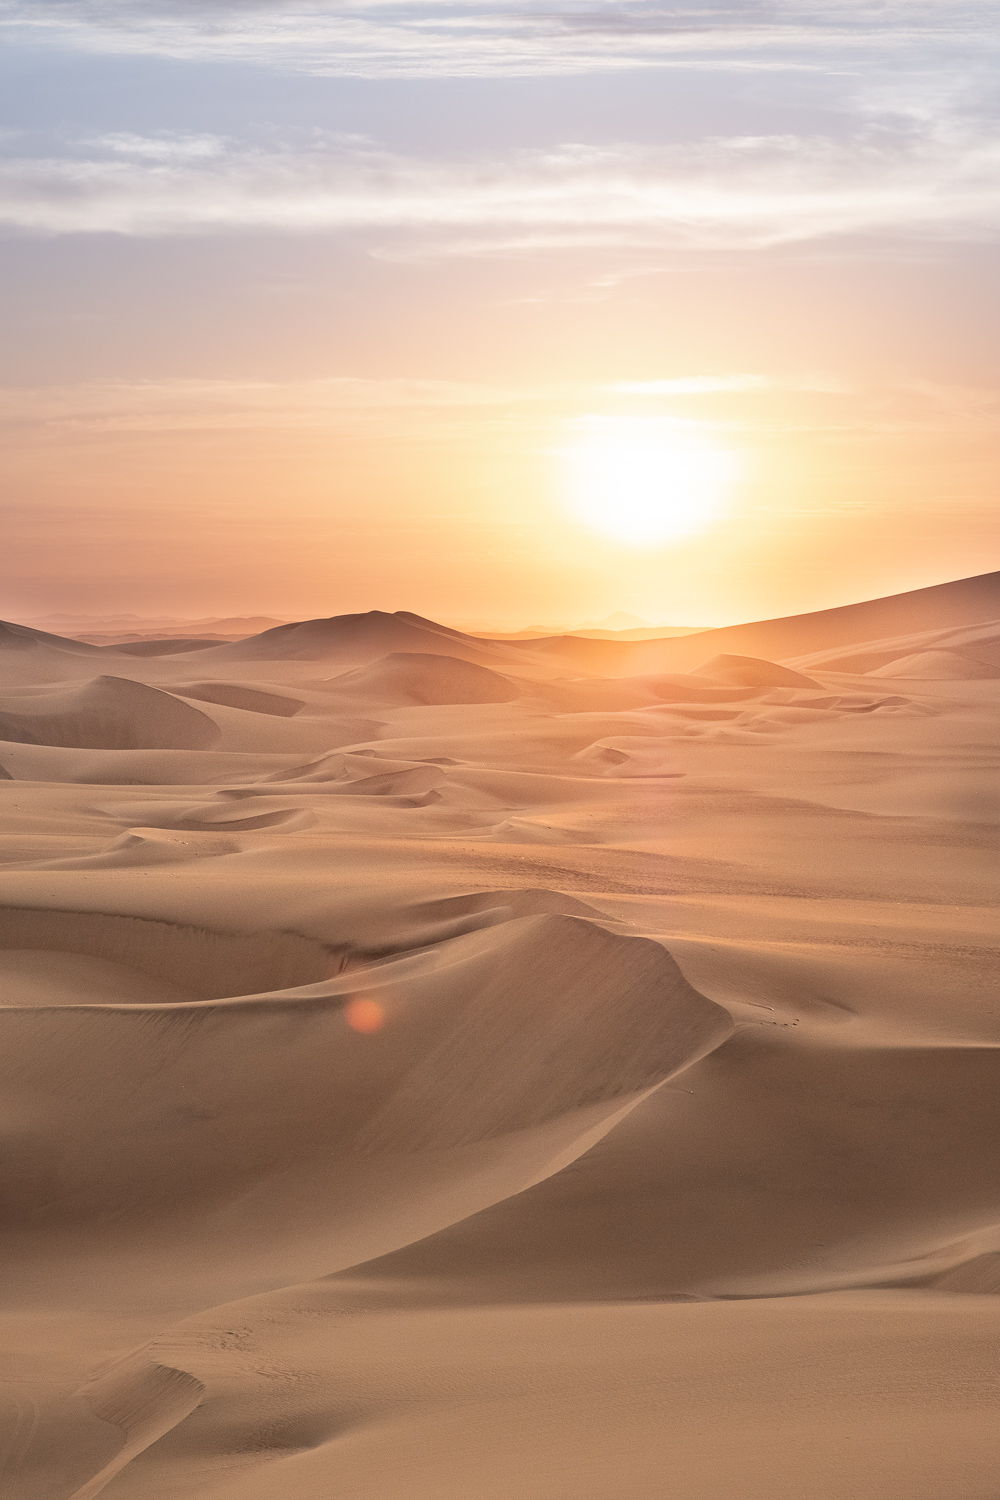 """Sunset in the desert of Ica, Peru. Travel photography and guide by © Natasha Lequepeys for """"And Then I Met Yoko"""". #huacachina #photoblog #travelblog #landscapephotography #fujifilm #blogger"""